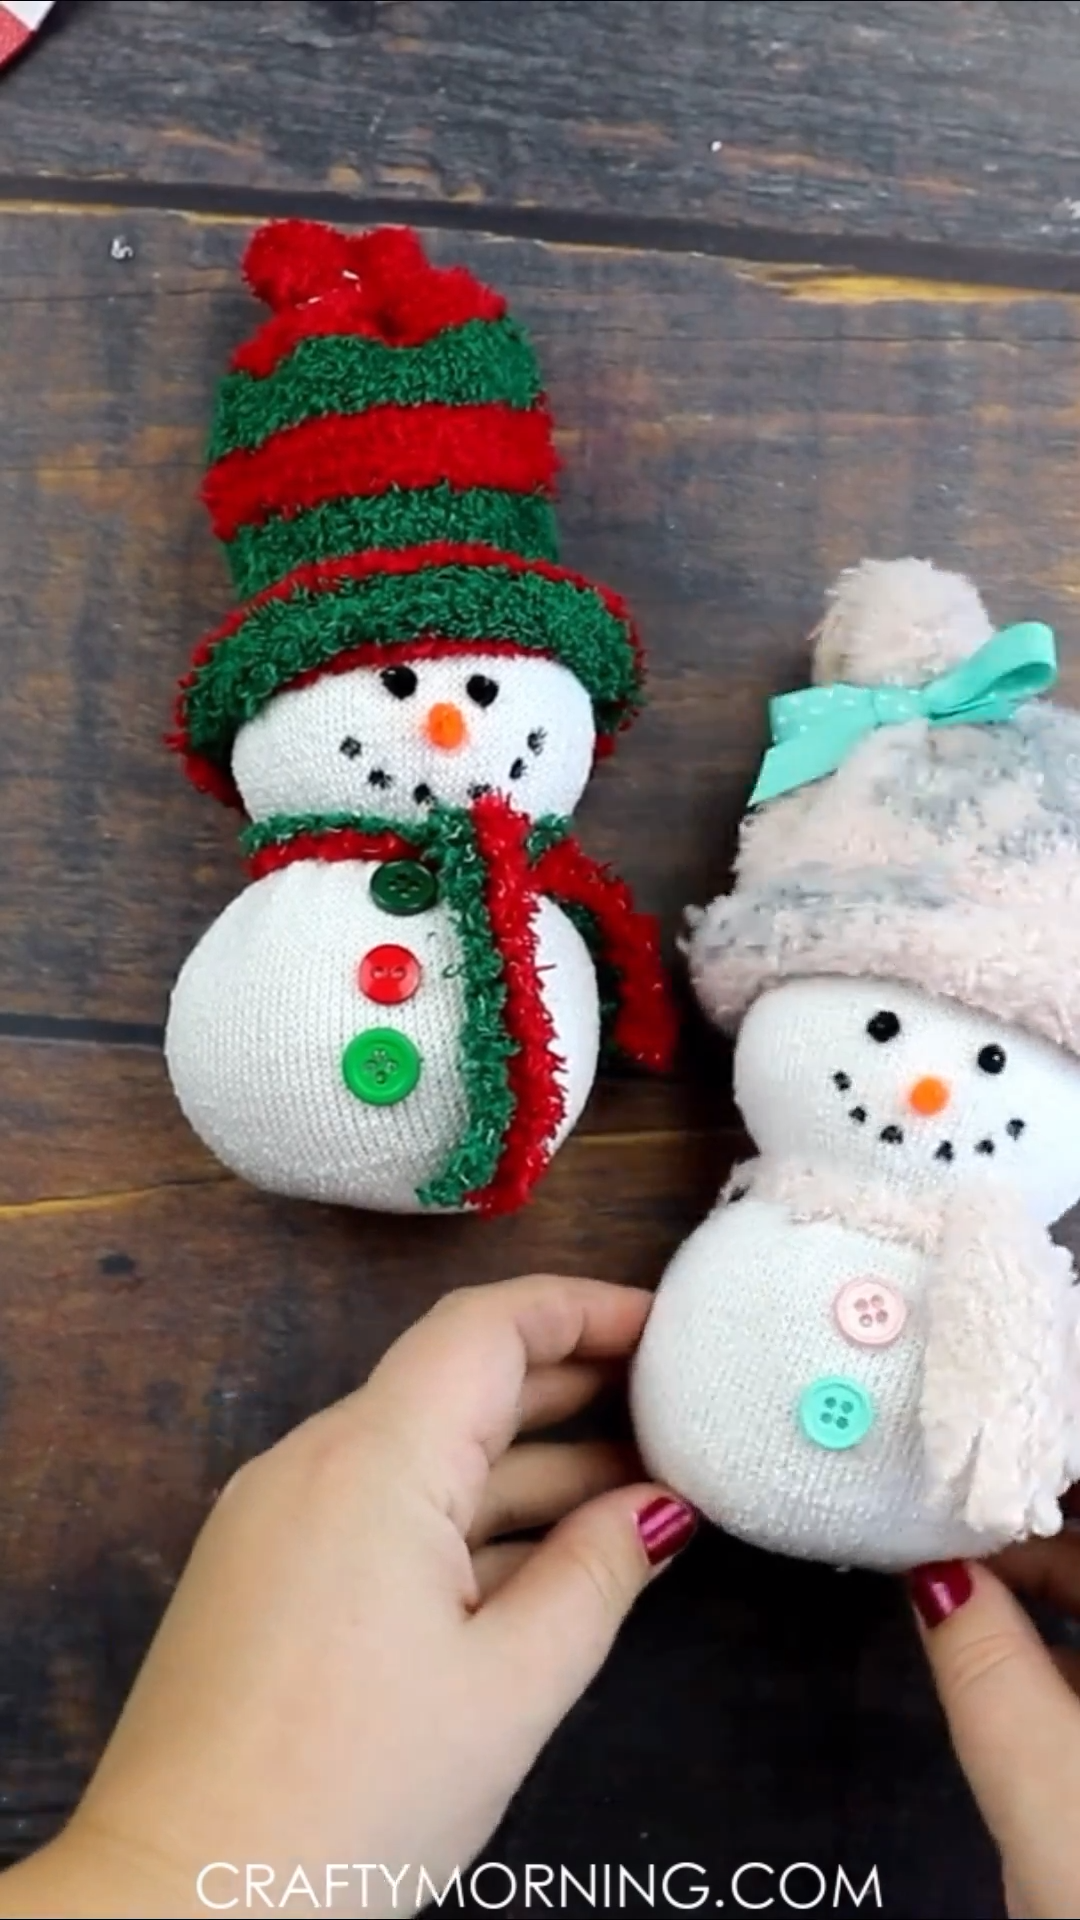 Easy Sock Snowman Craft- fun christmas craft for kids to make! Fun christmas art project that you can make in the classroom, daycare, etc. Homemade DIY Project to put up for holiday decor! Fuzzy sock snowmen. Directions/step by steps.